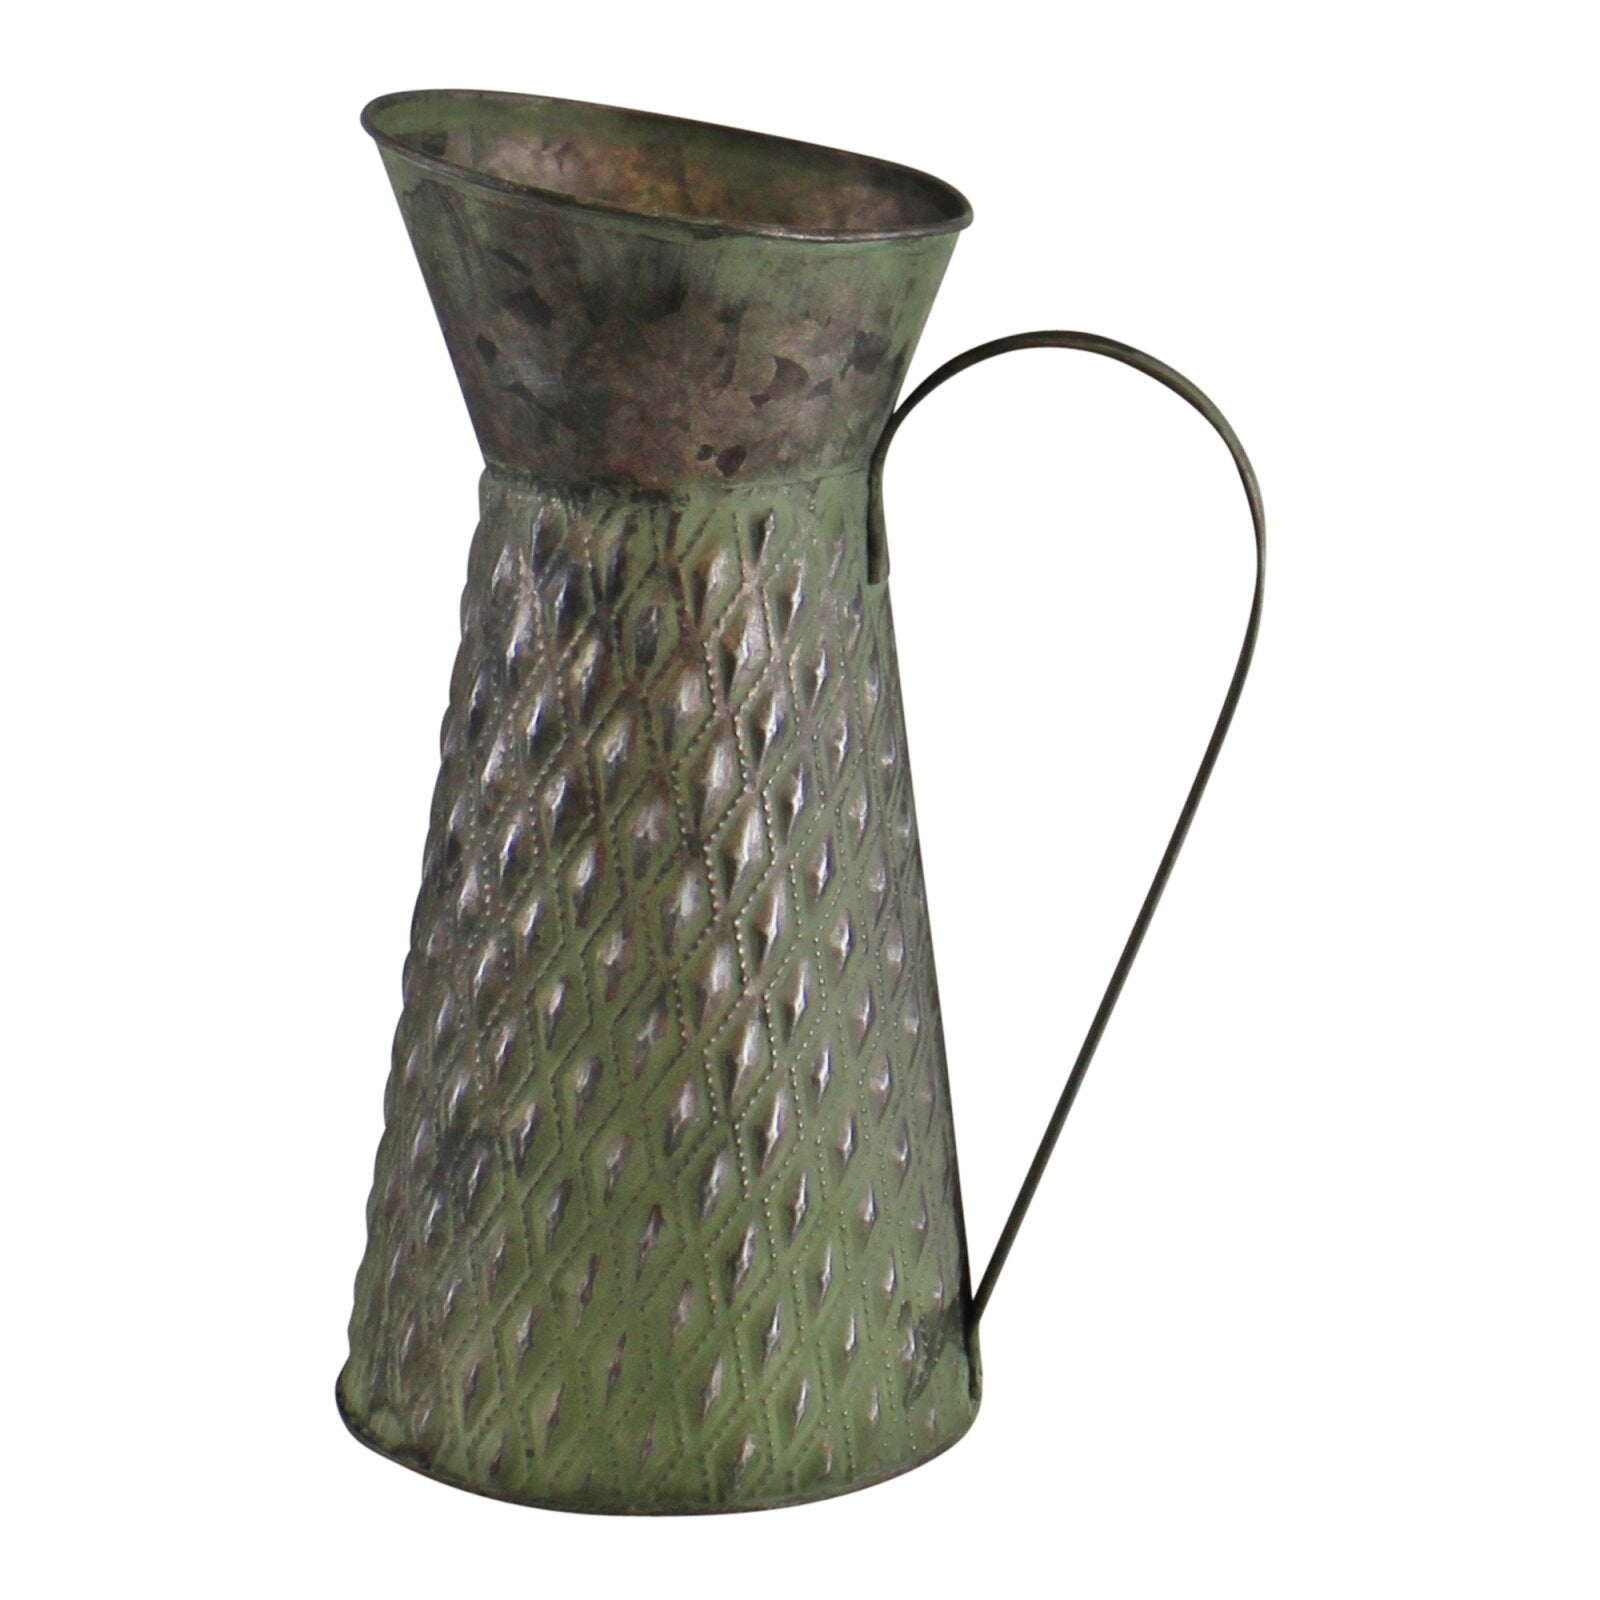 Zinc Jug Planter In Green, Lawn & Garden by Low Cost Gifts